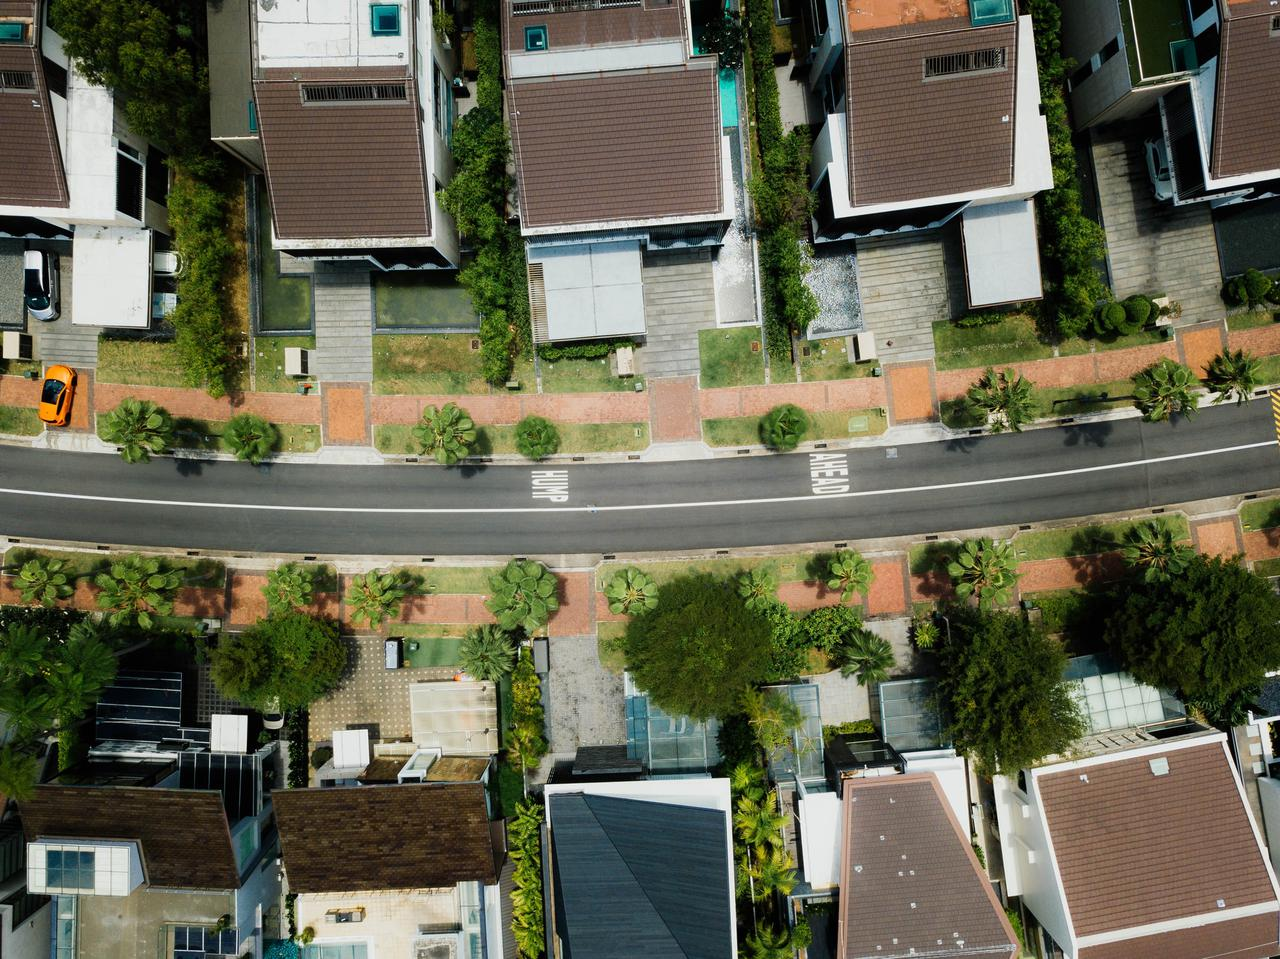 overhead view of row homes and street